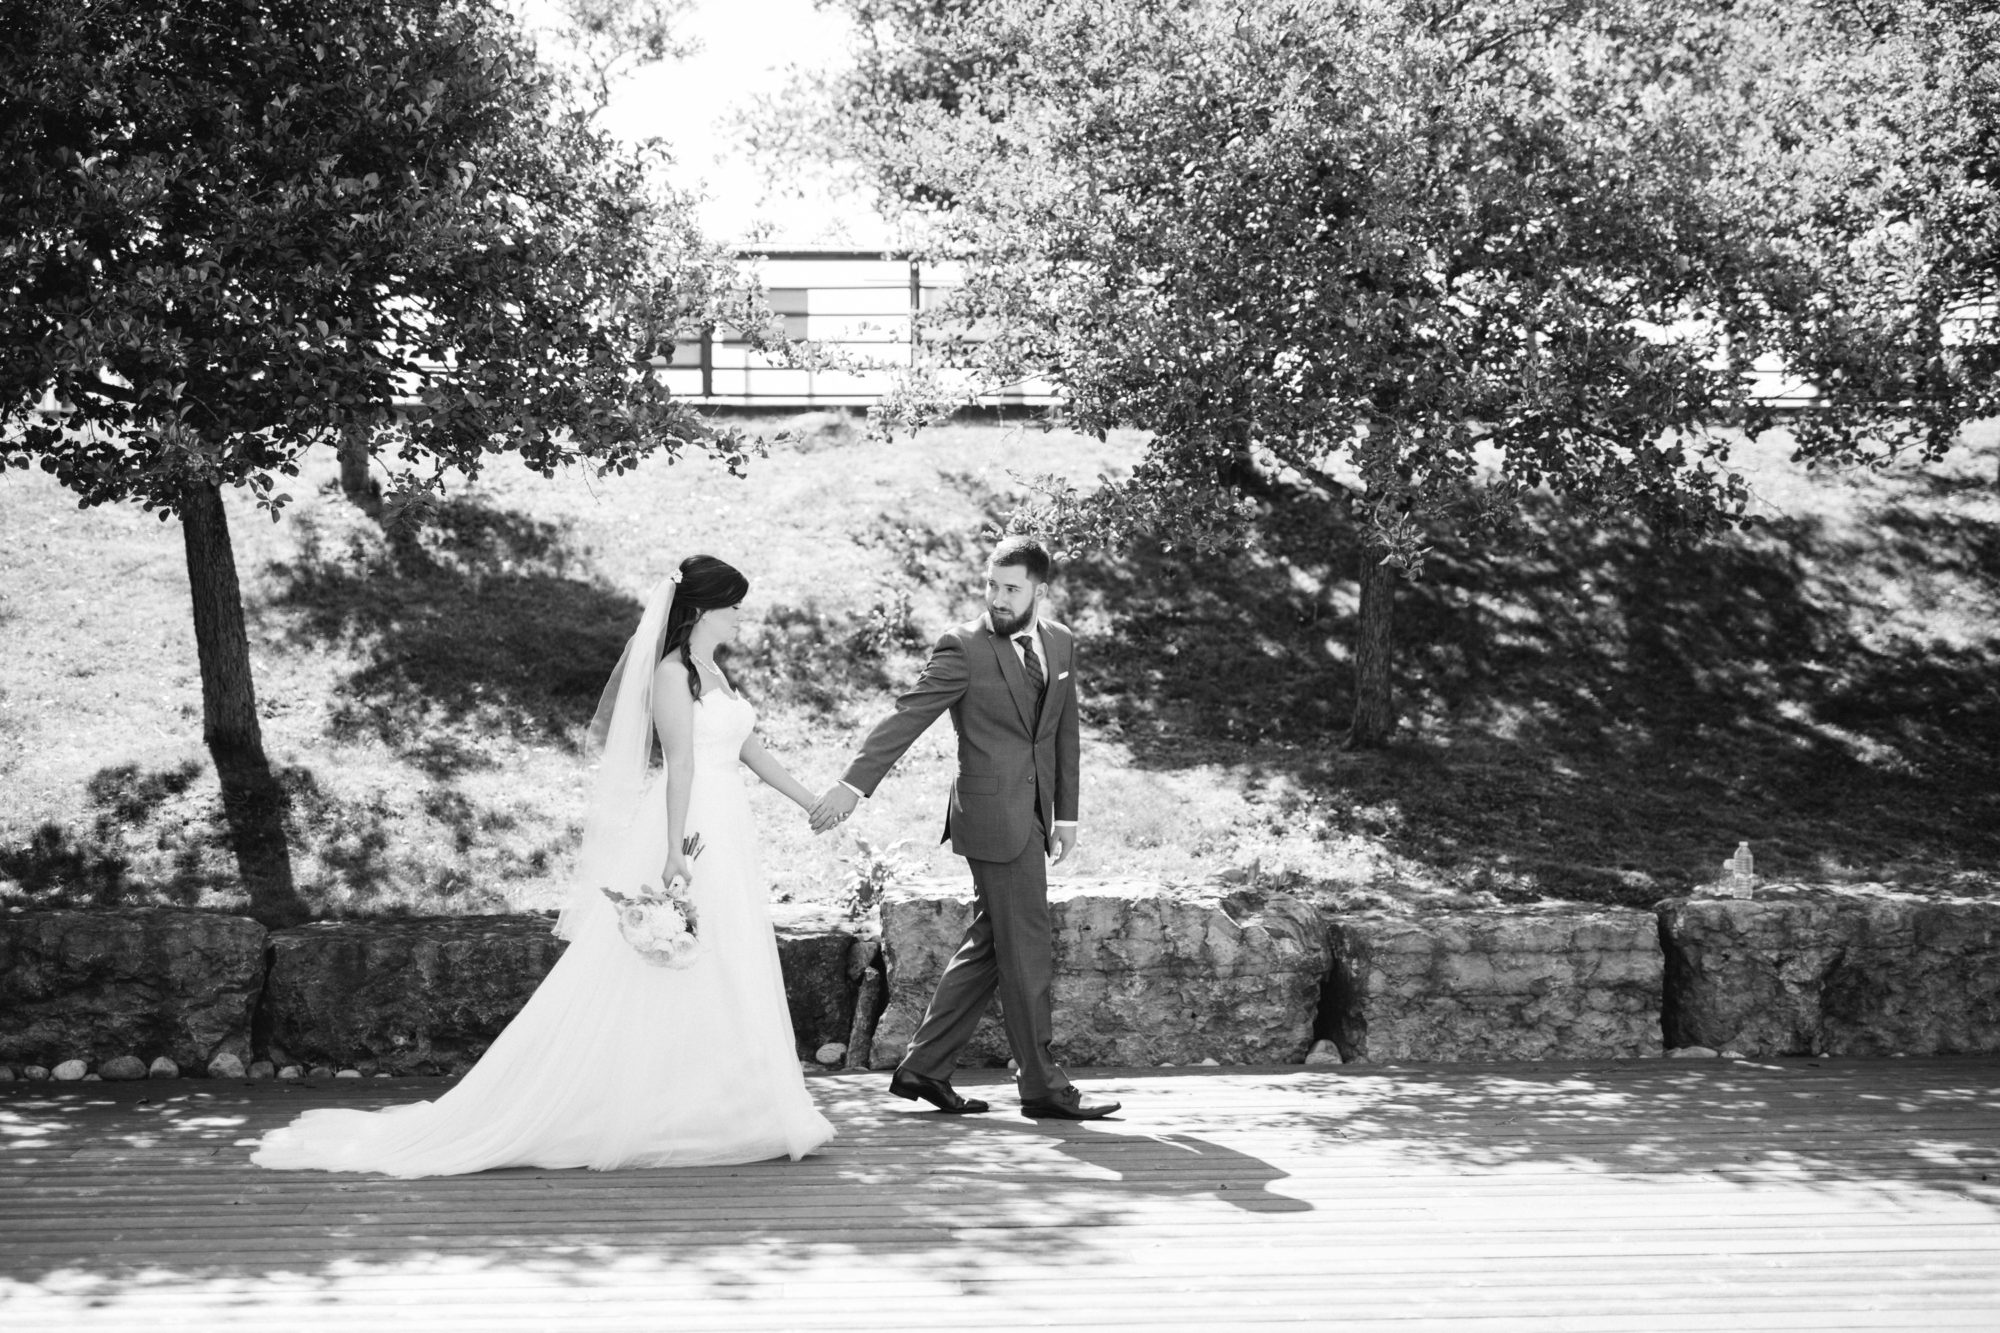 Black and White Bride Groom Wedding King City Zsuzsi Pal Photography